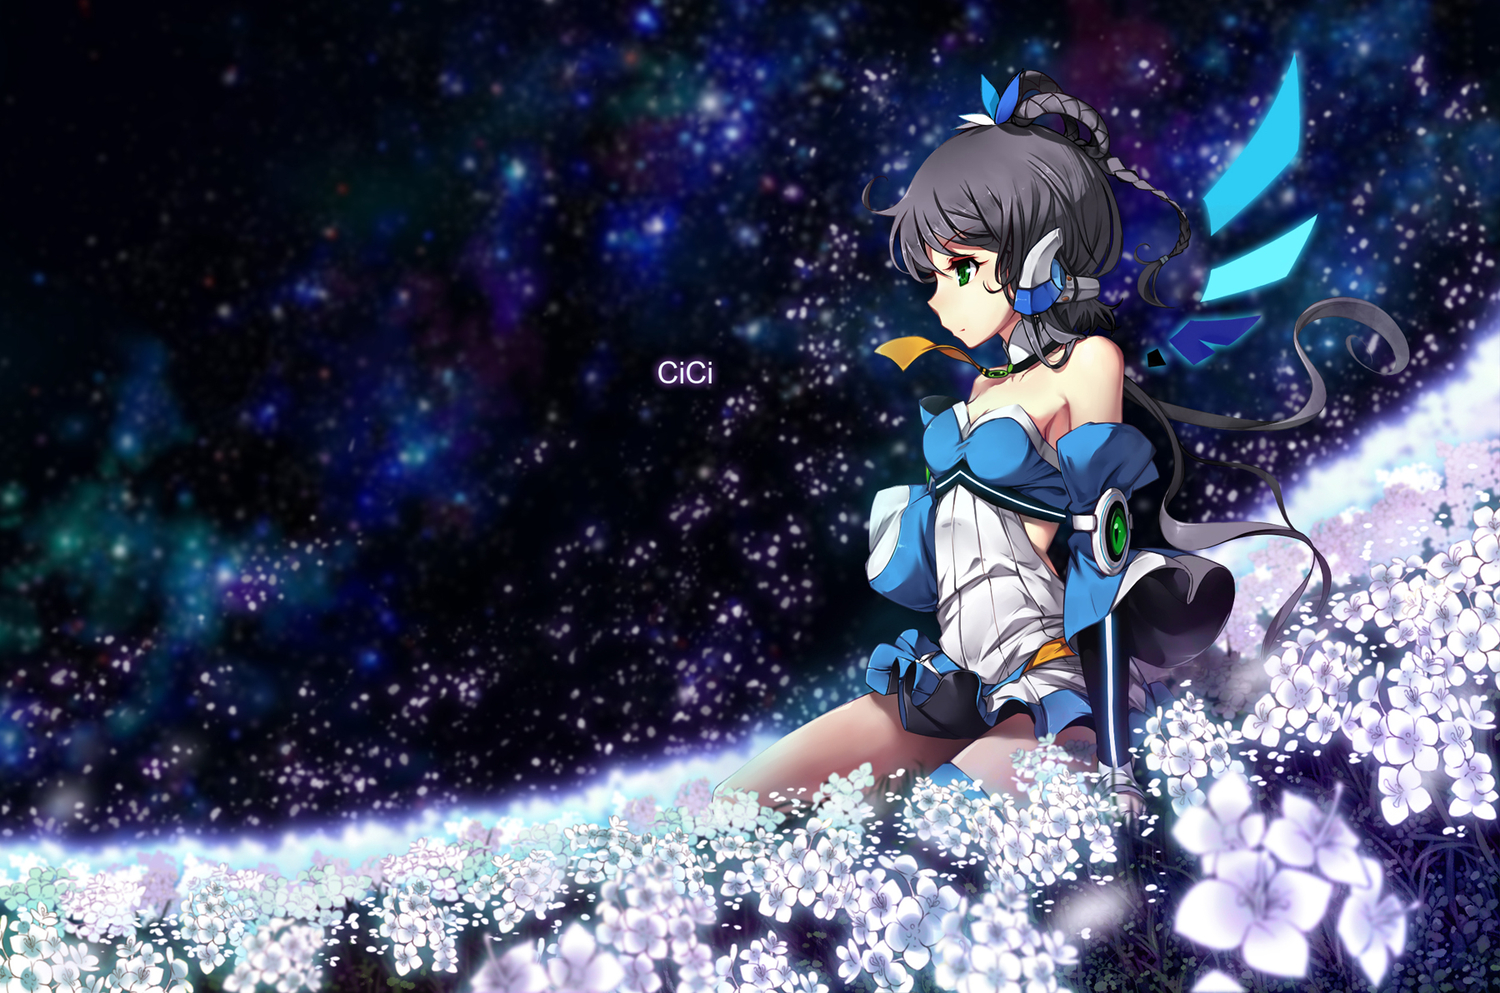 black_hair cici flowers luo_tianyi sky space stars tie vocaloid